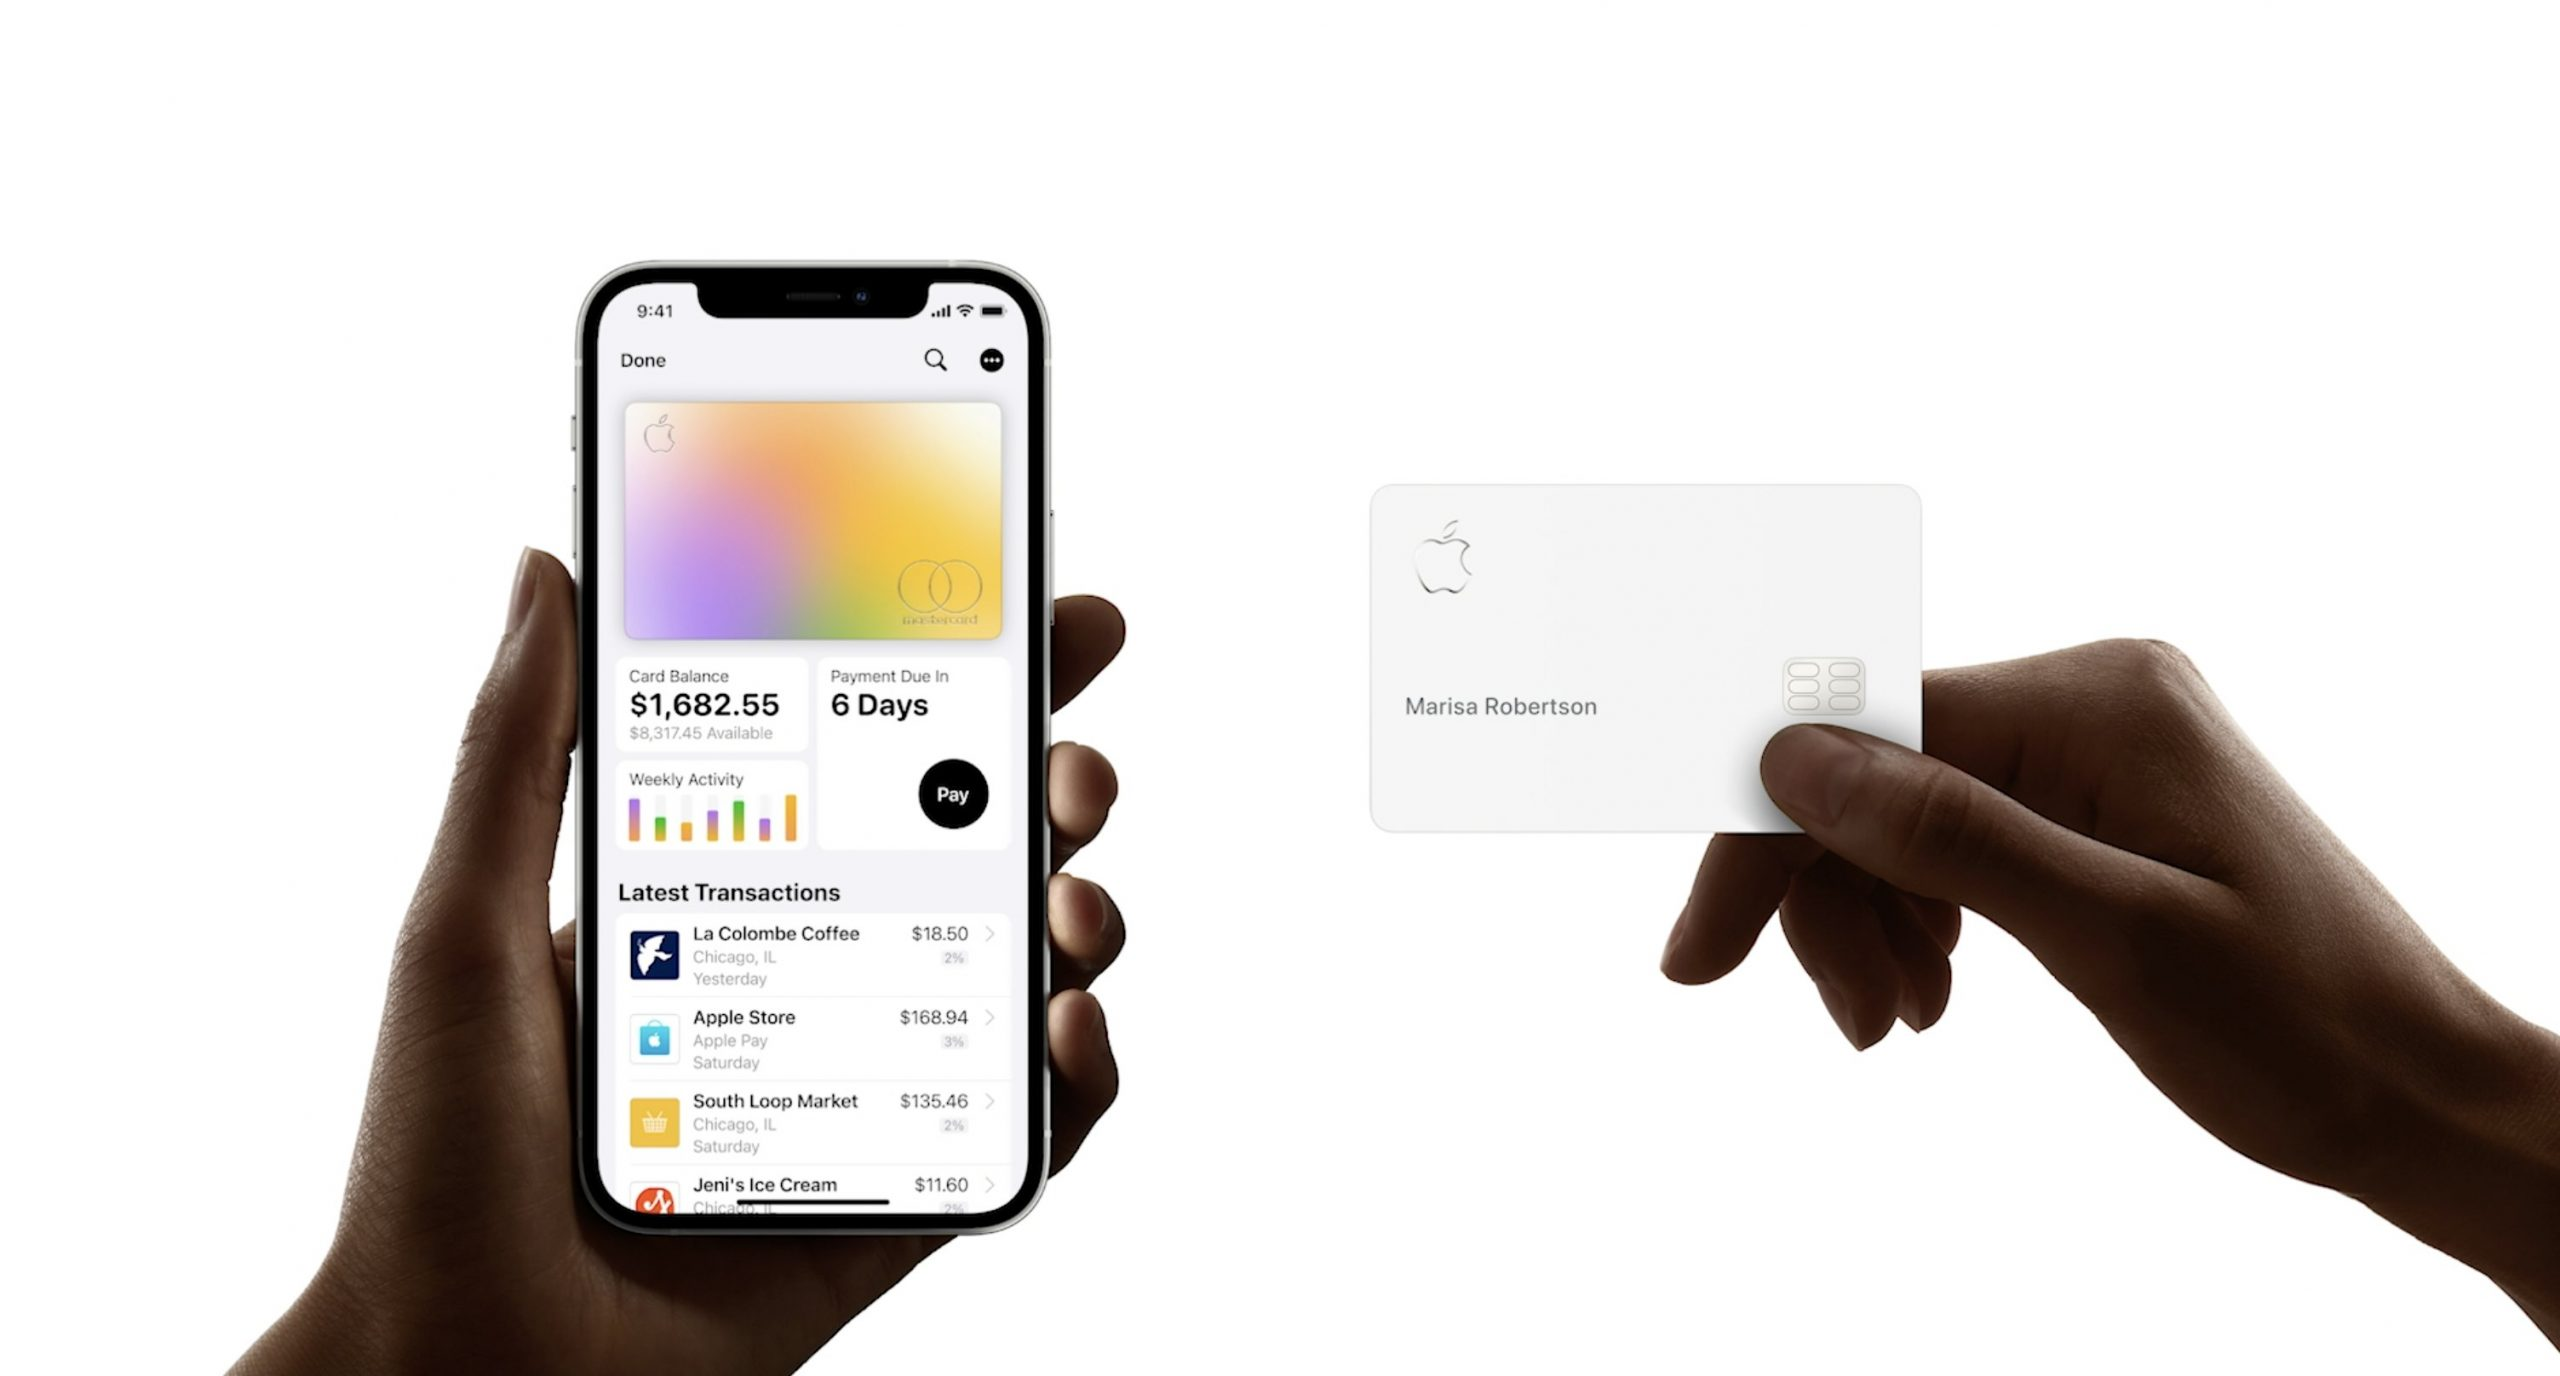 10:33 - Apple Card Launched Apple